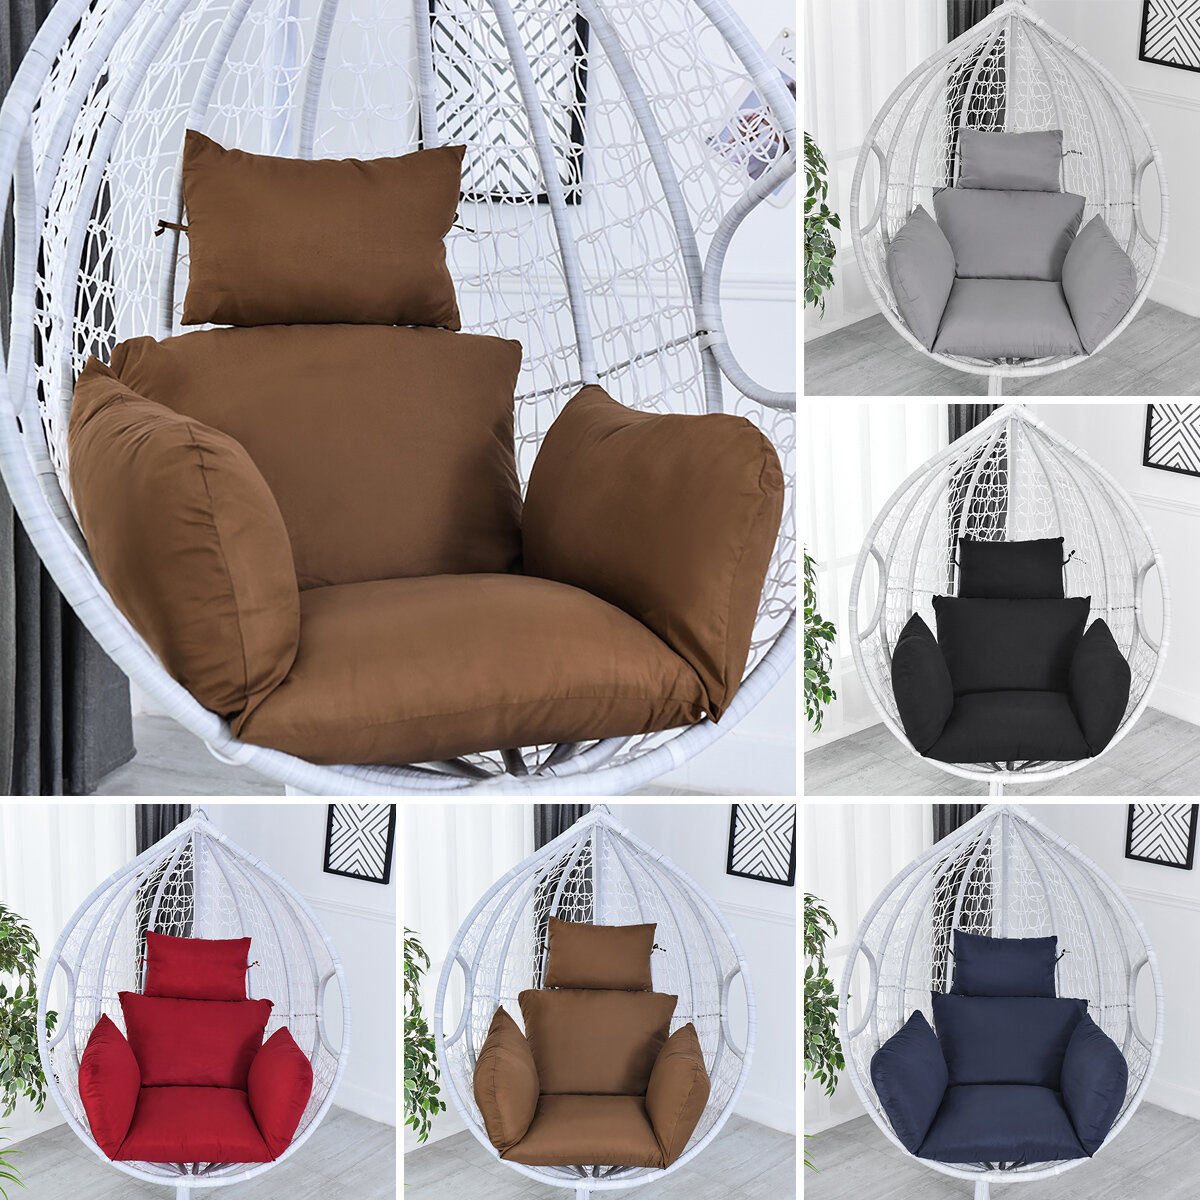 Hanging Egg Hammock Cradle Chair Cushion Swing Seat Thick Nest Hanging Chair Cushion With Pillow Sale Banggood Com